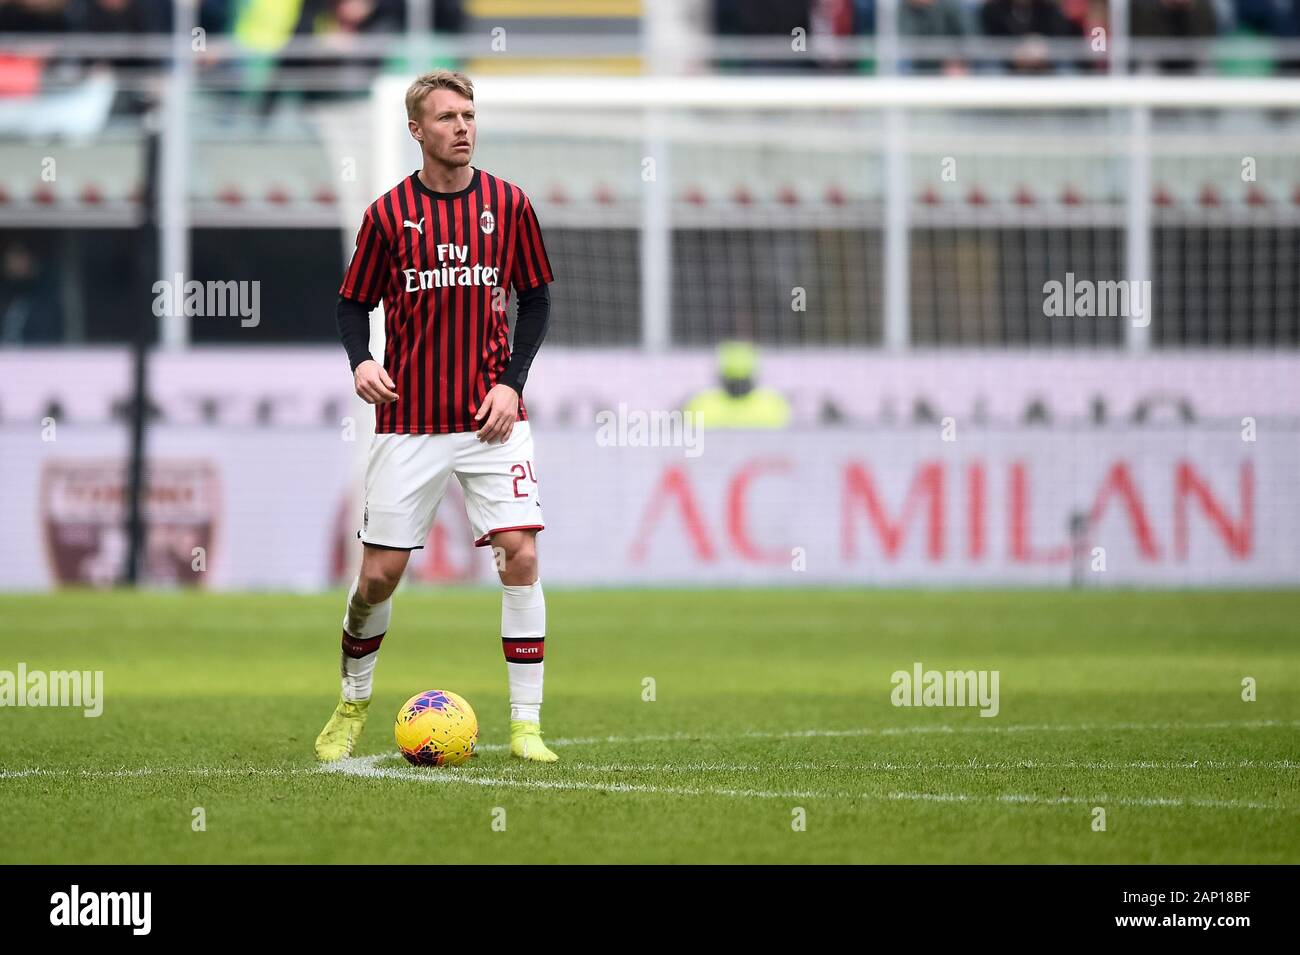 Milan Italy 19 January 2020 Simon Kjaer Of Ac Milan In Action During The Serie A